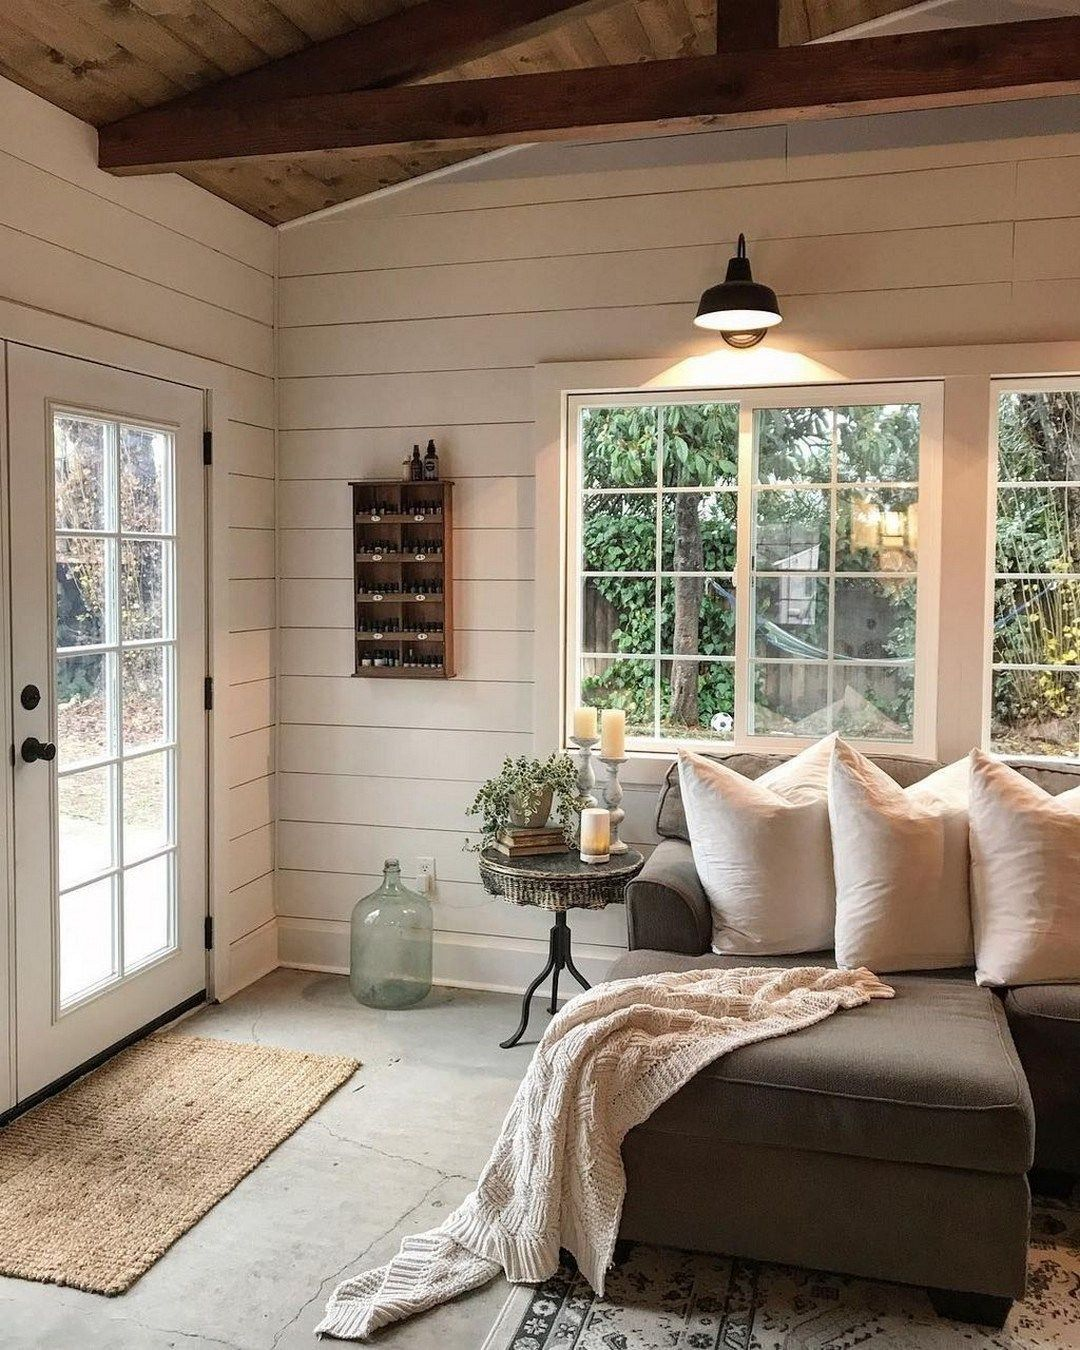 Cozy Modern Farmhouse Sunroom Design Ideas 6 Rustic Farmhouse Living Room Farmhouse Decor Living Room Modern Farmhouse Living Room